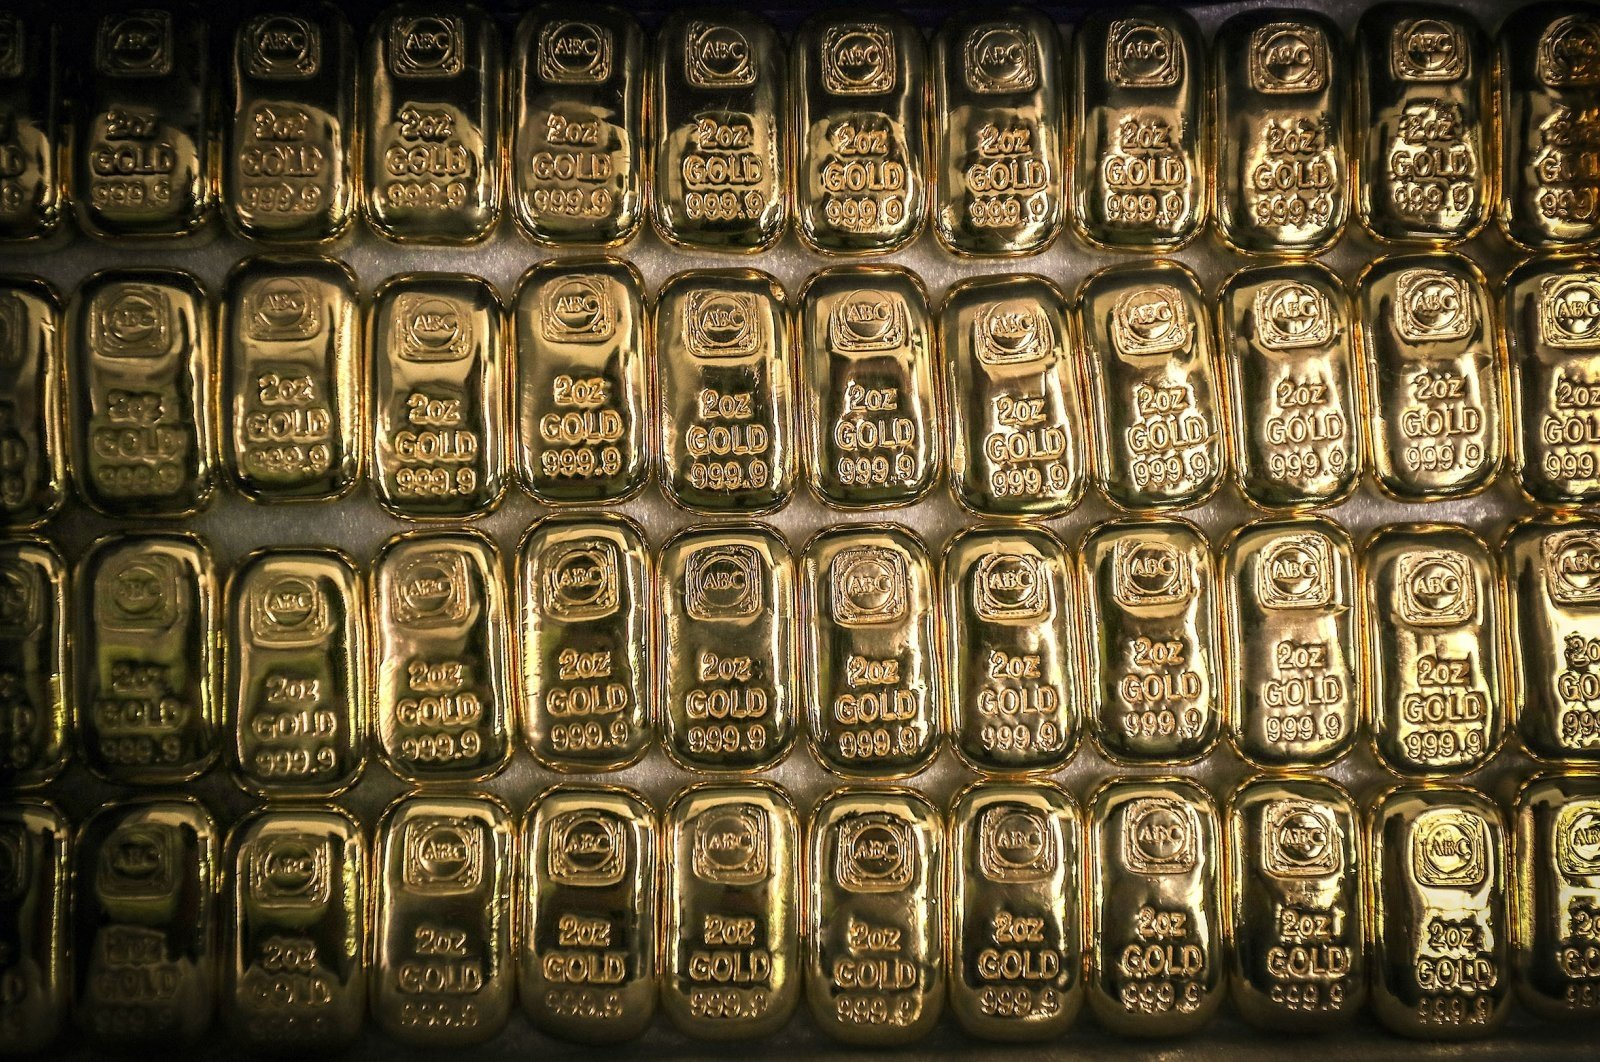 Ounce gold bars are displayed at the ABC Refinery smelter in Sydney, New South Wales, Australia, July 2, 2020. (Getty Images)